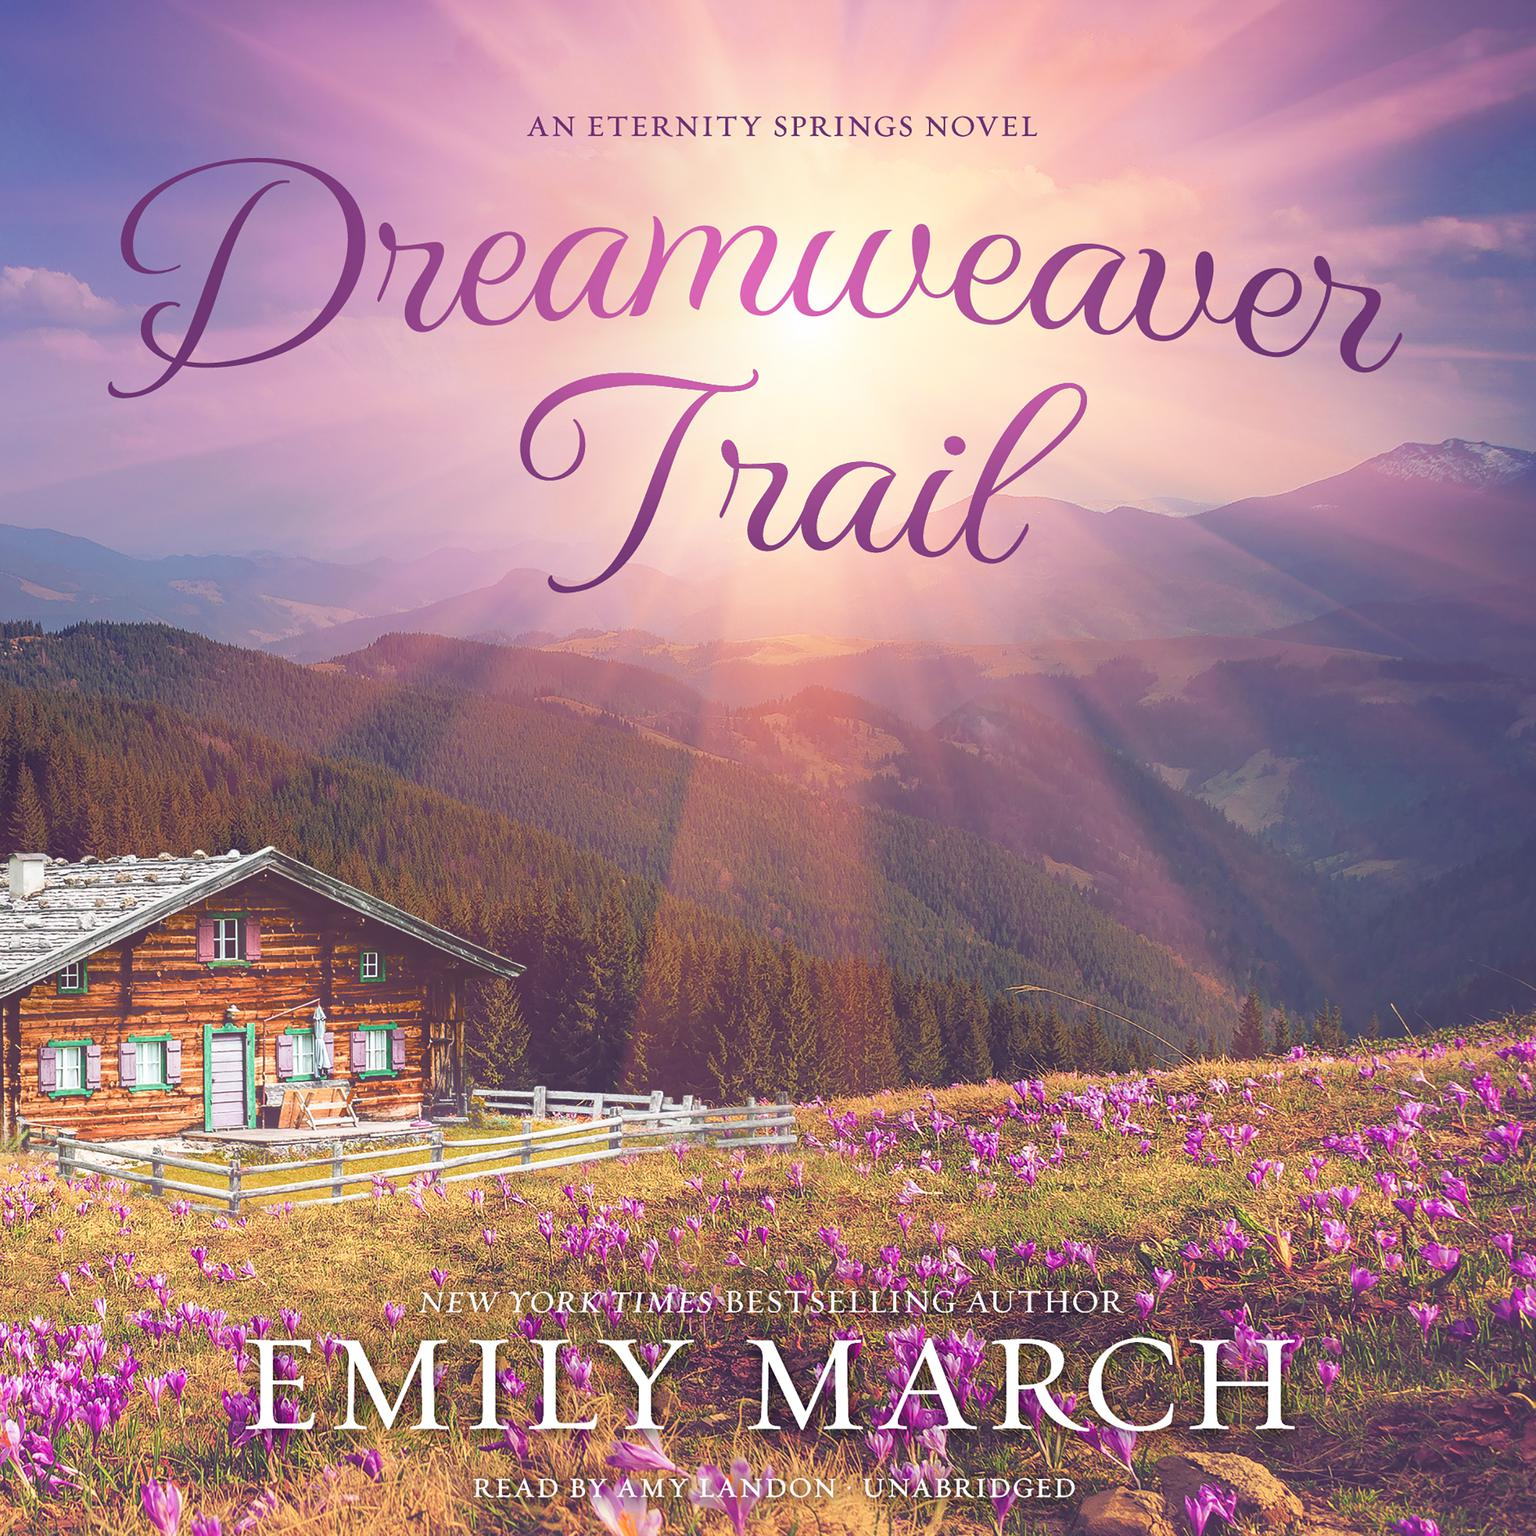 Printable Dreamweaver Trail: An Eternity Springs Novel Audiobook Cover Art